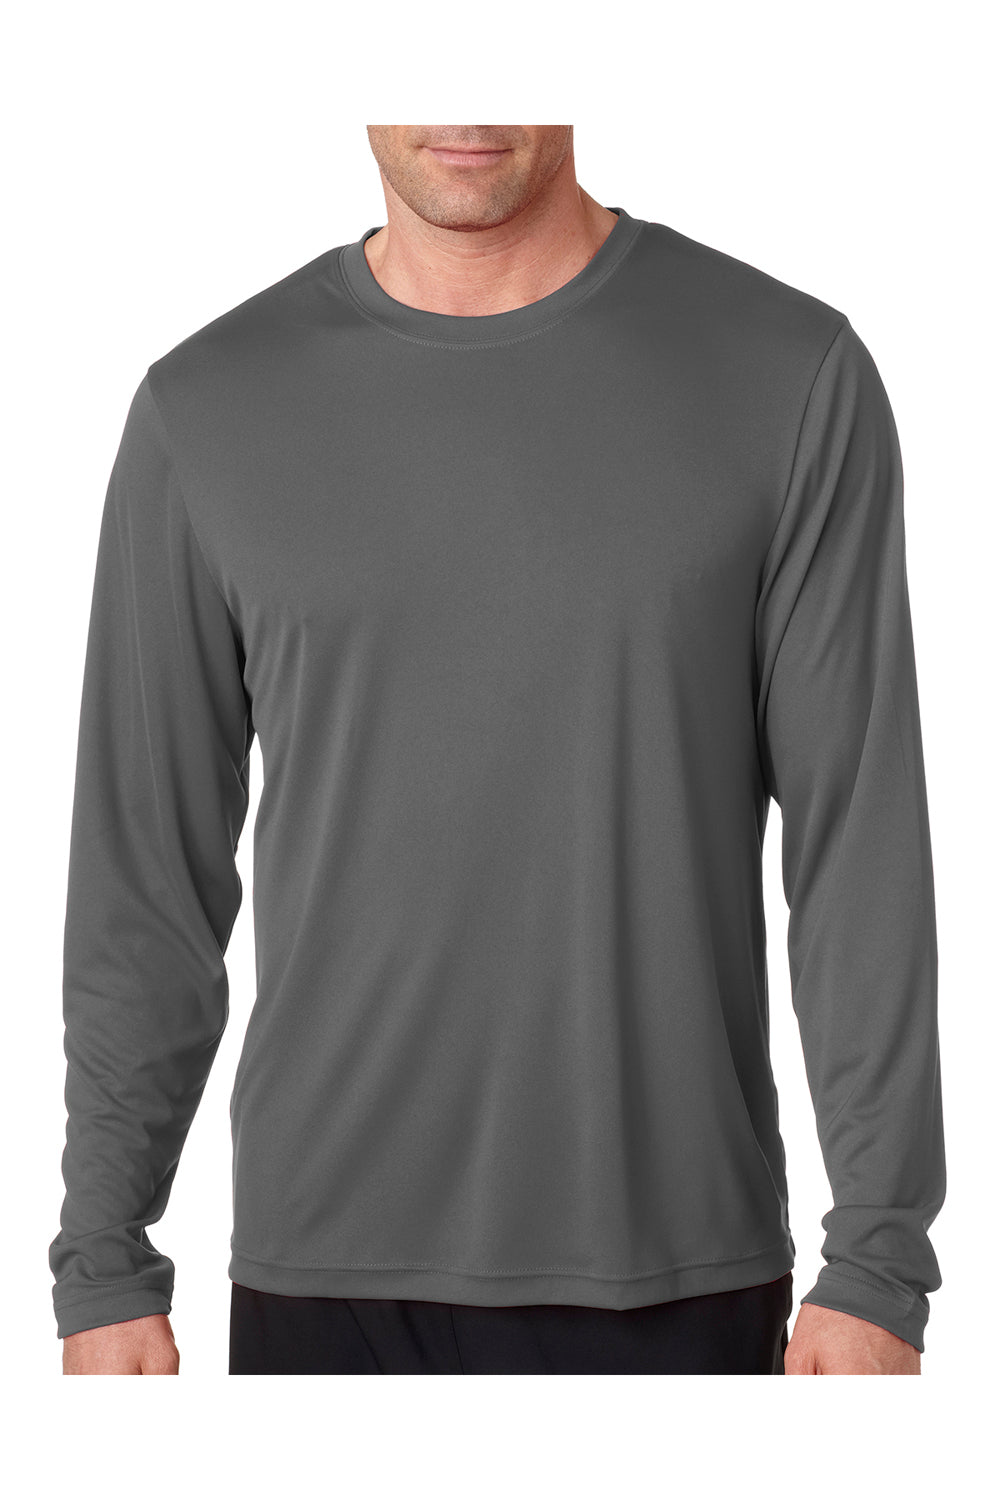 Hanes 482L Mens Cool DRI FreshIQ Moisture Wicking Long Sleeve Crewneck T-Shirt Graphite Grey Front